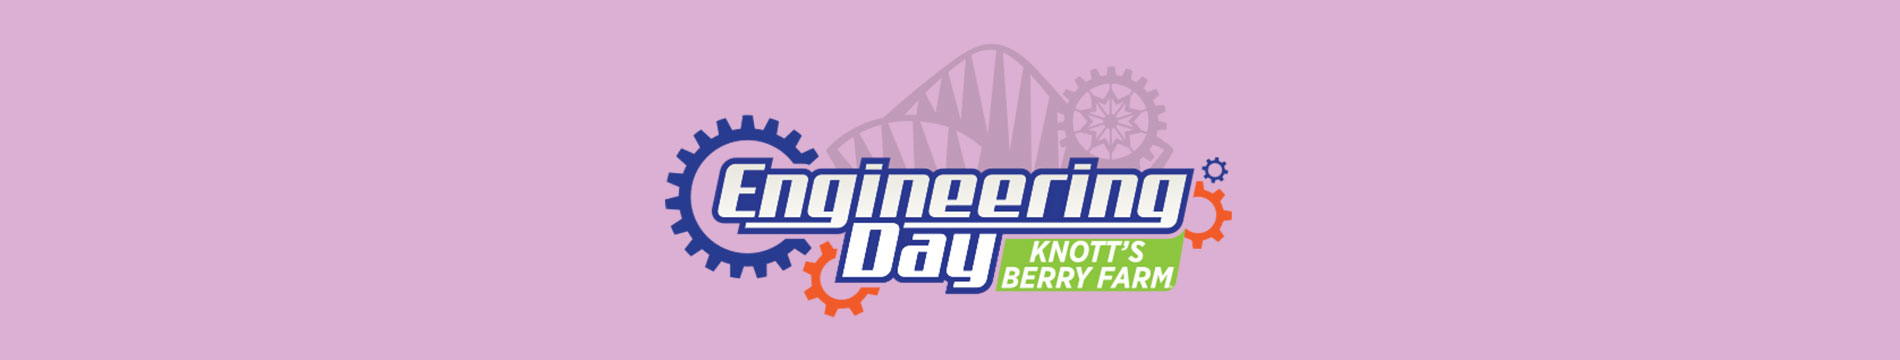 Knott's Berry Farm Student and Youth Groups Engineering Day